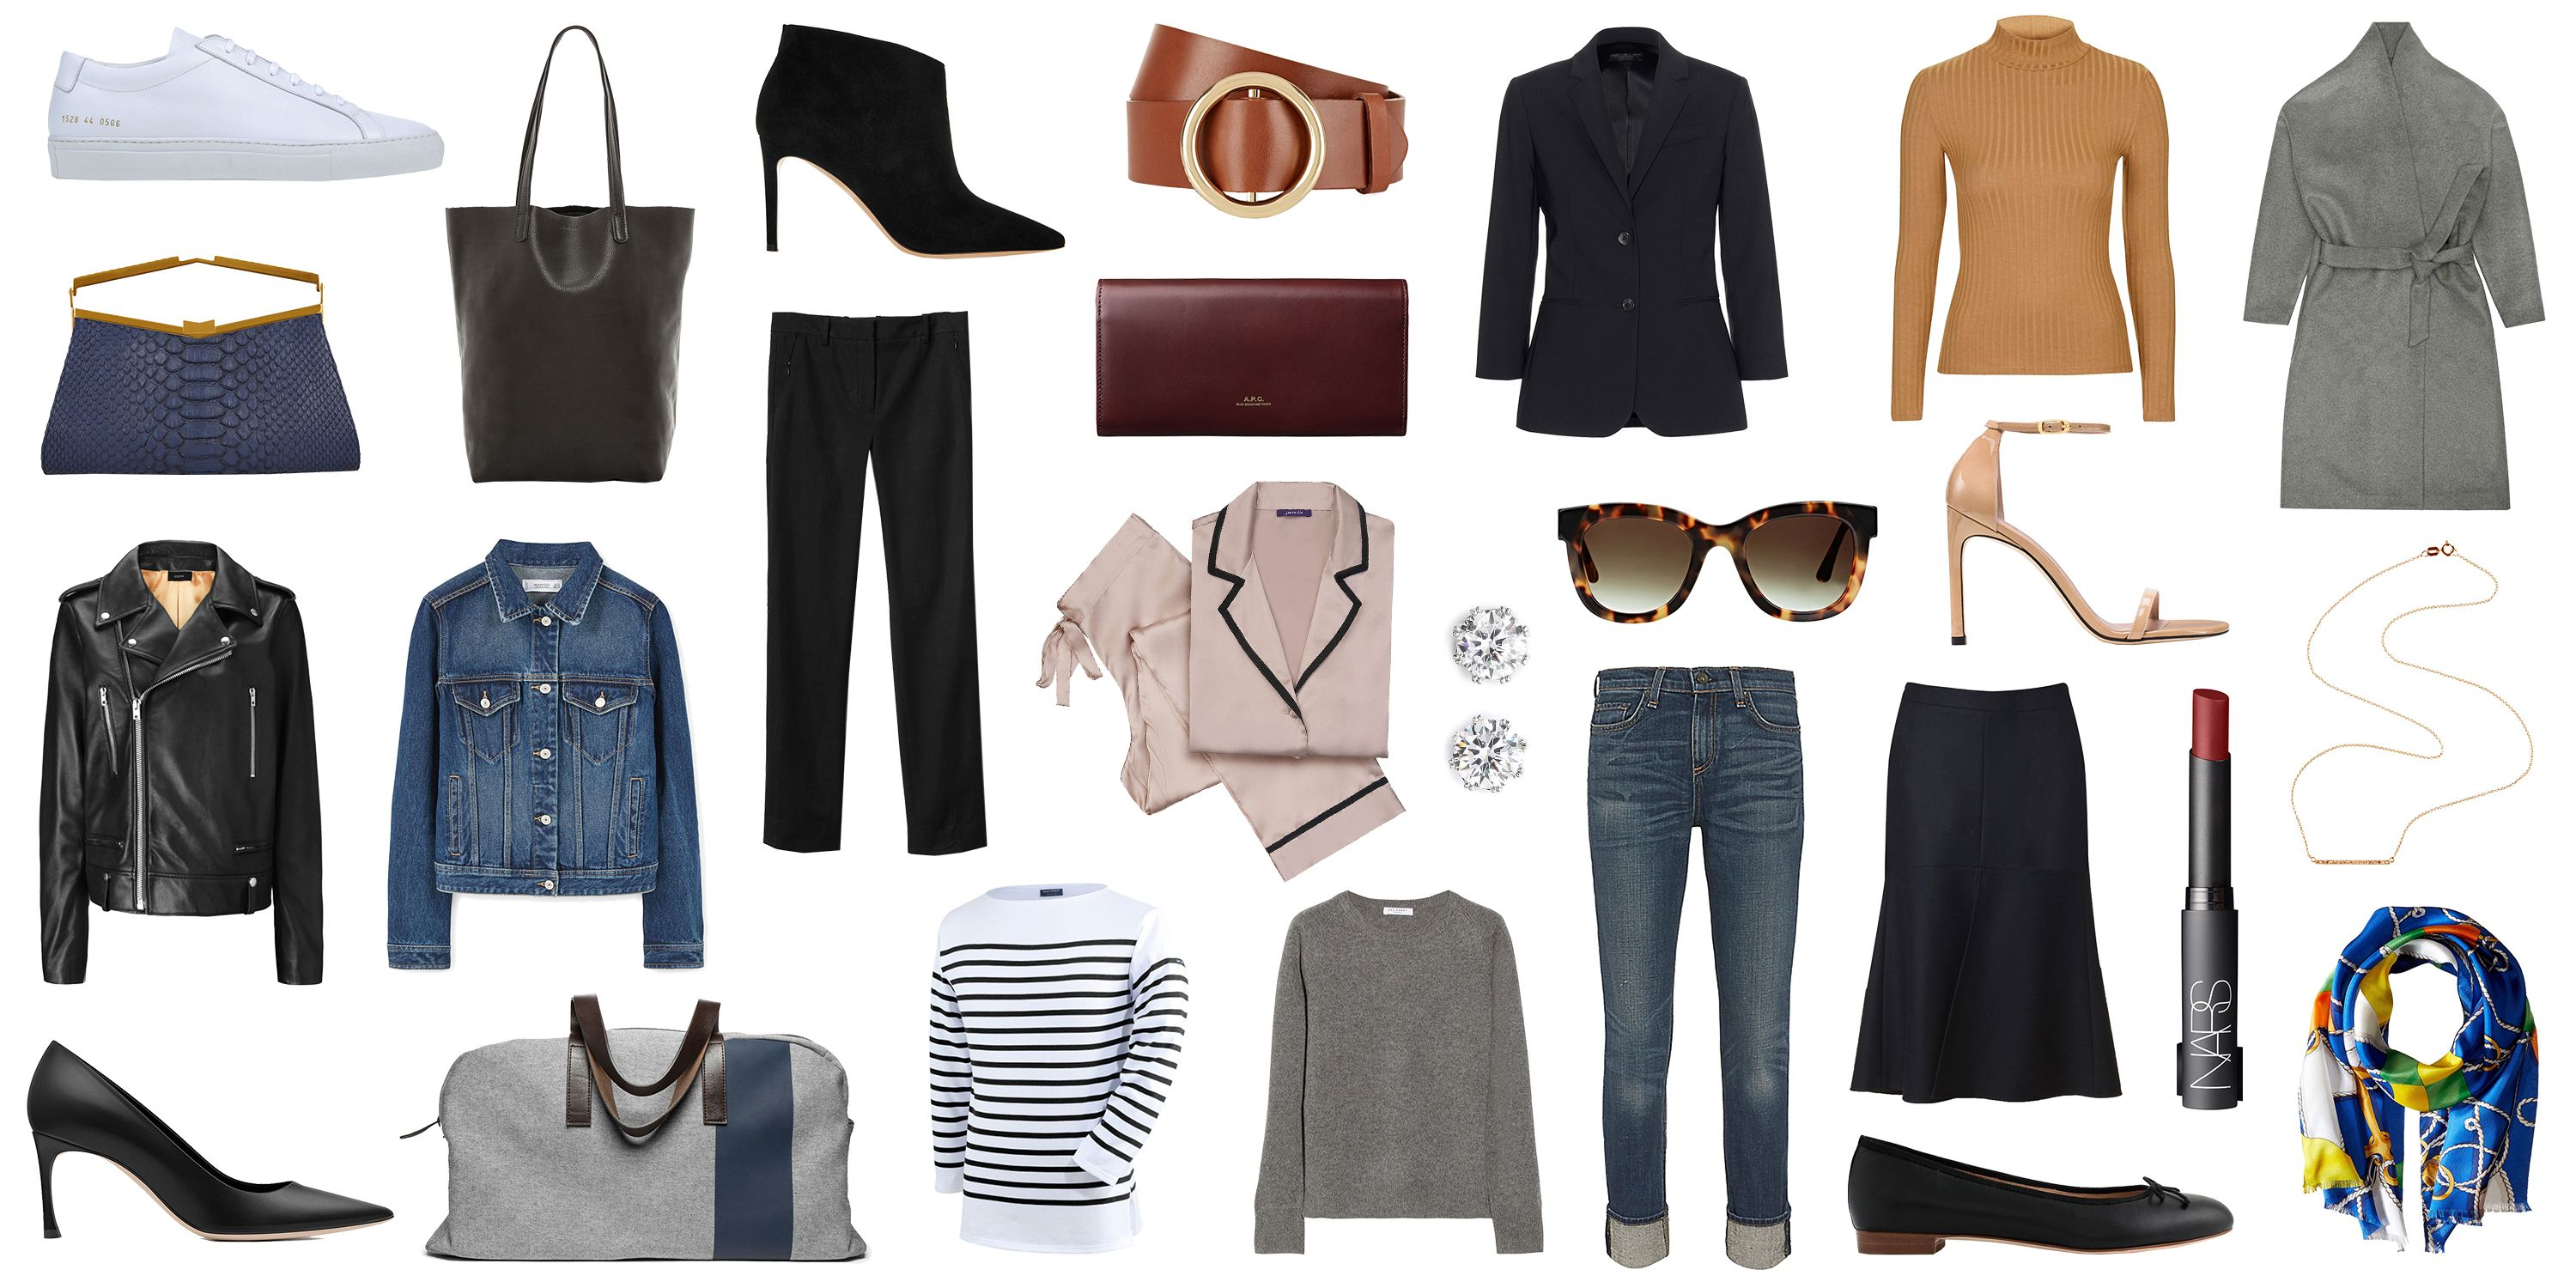 30 fashion staples to have by 30 wardrobe essentials to own by